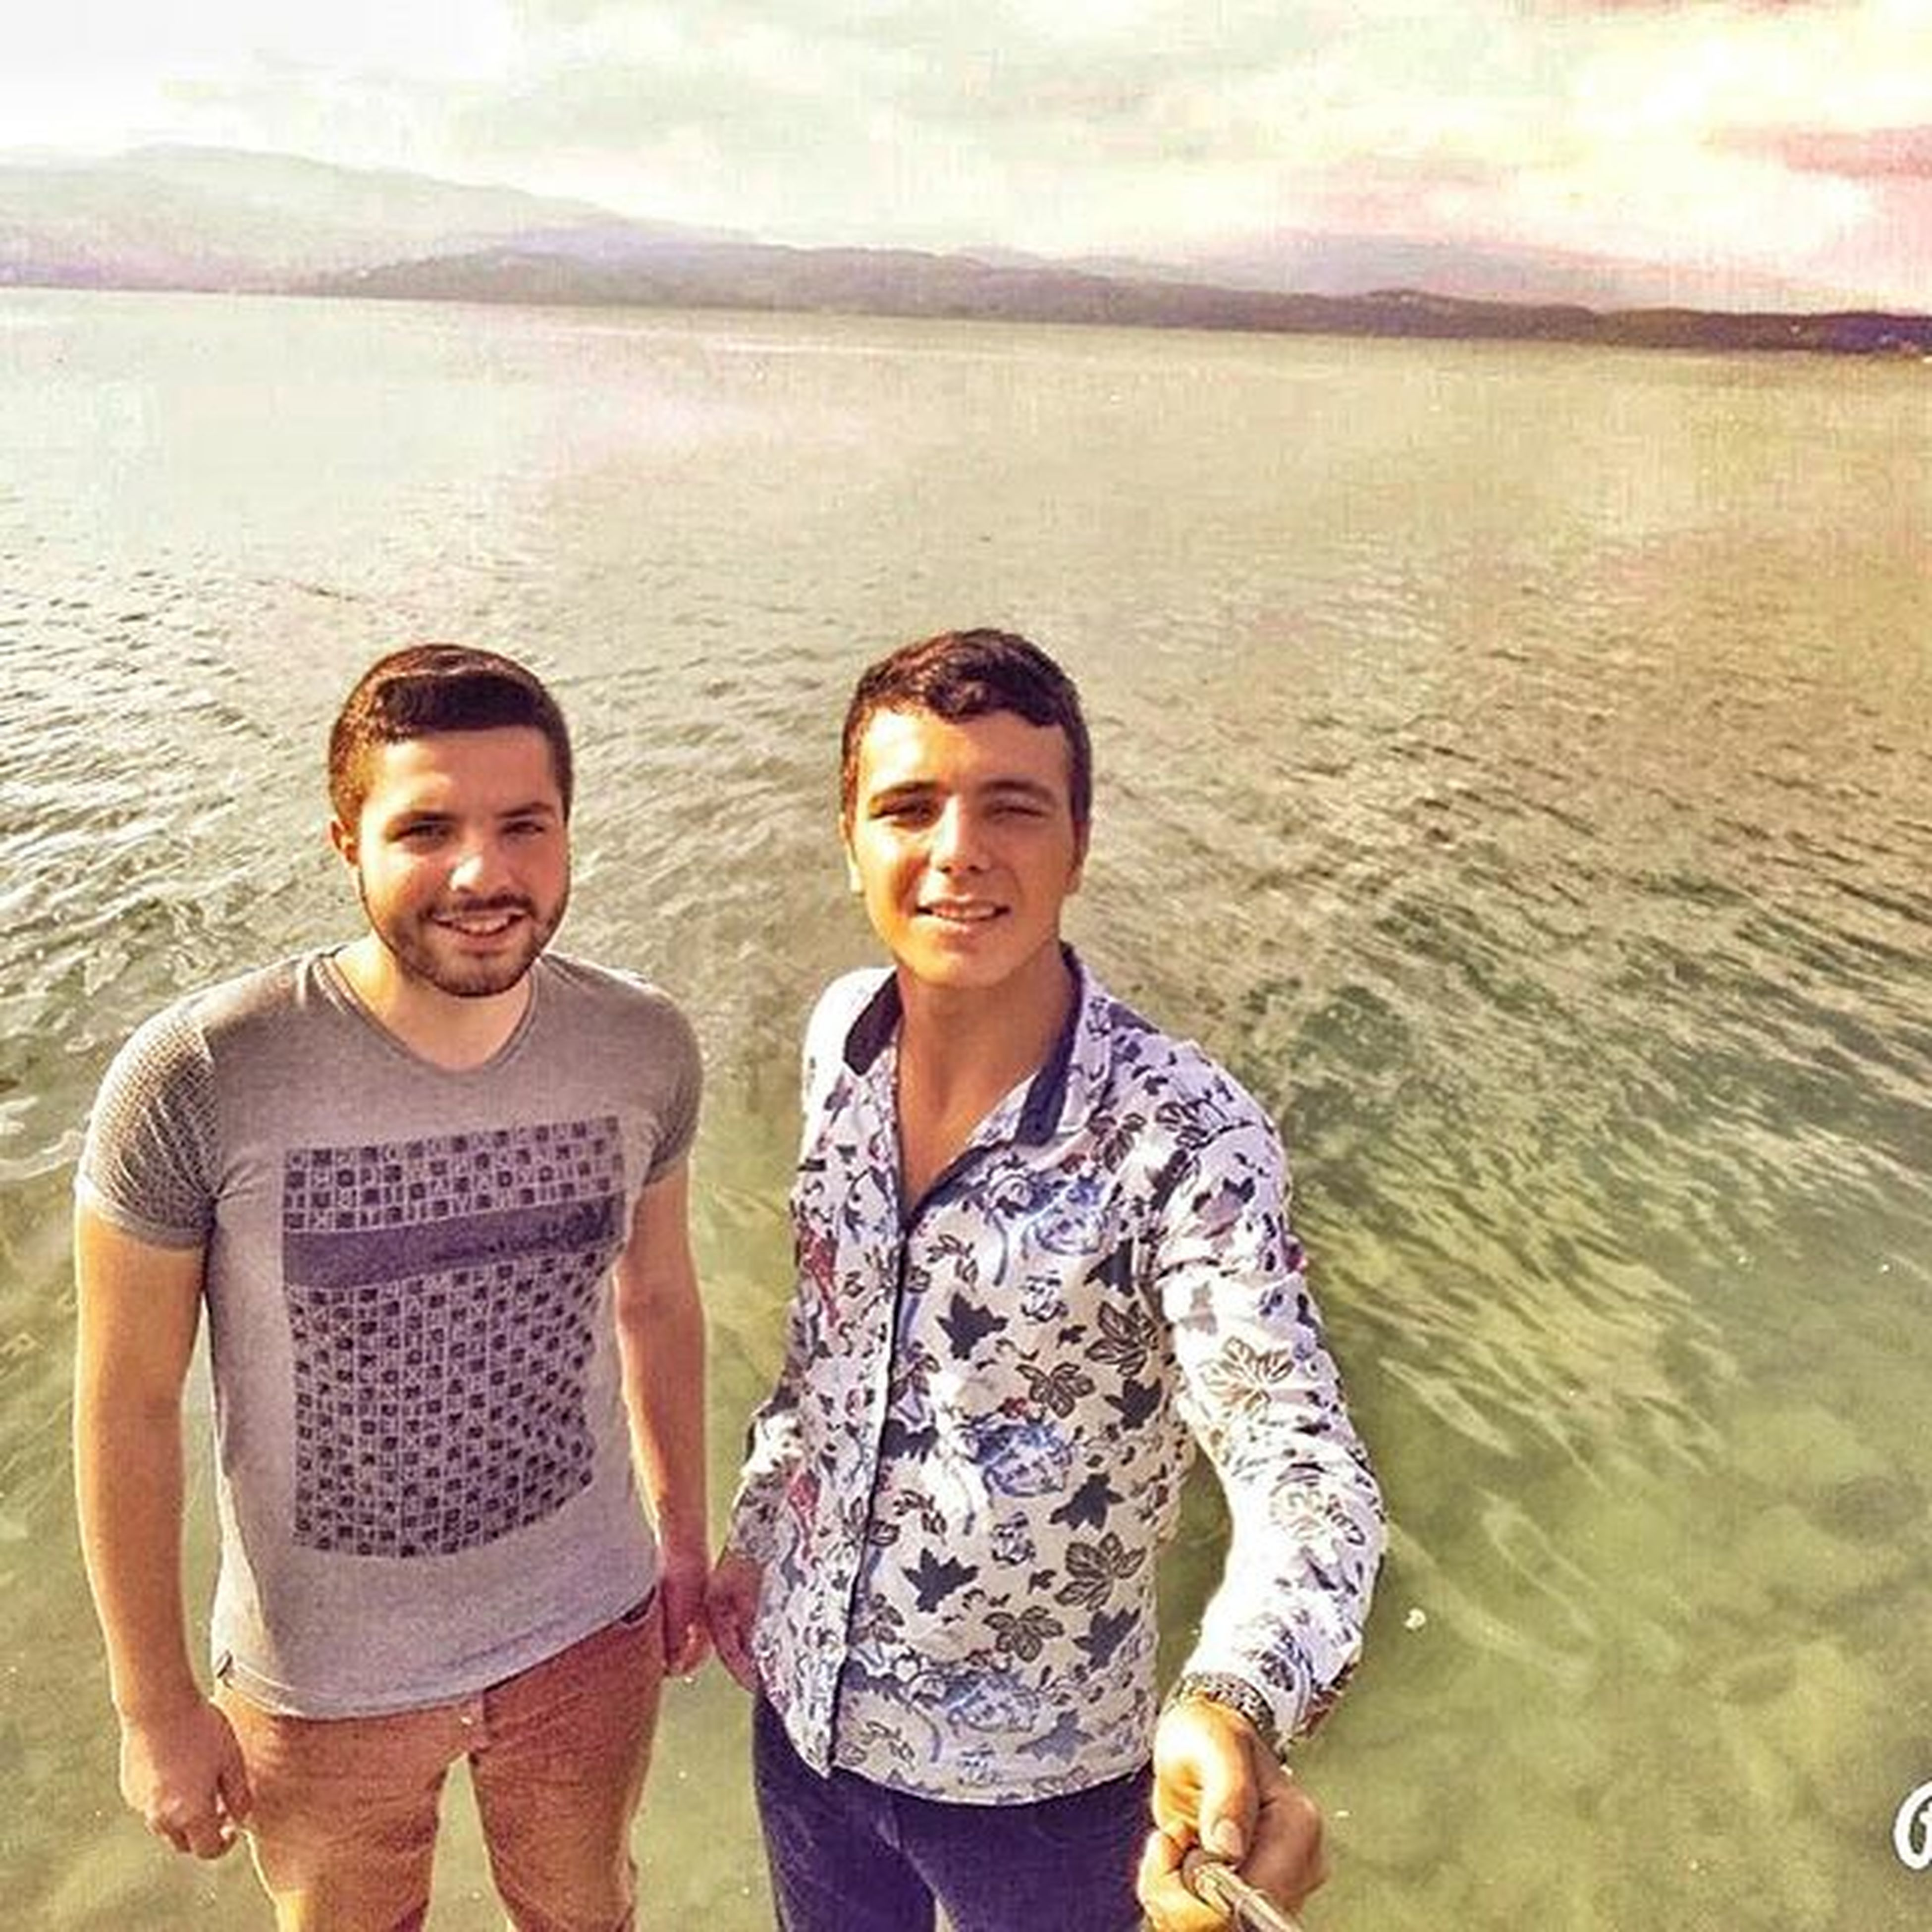 lifestyles, person, looking at camera, portrait, leisure activity, smiling, togetherness, water, bonding, happiness, casual clothing, front view, young adult, love, standing, young men, toothy smile